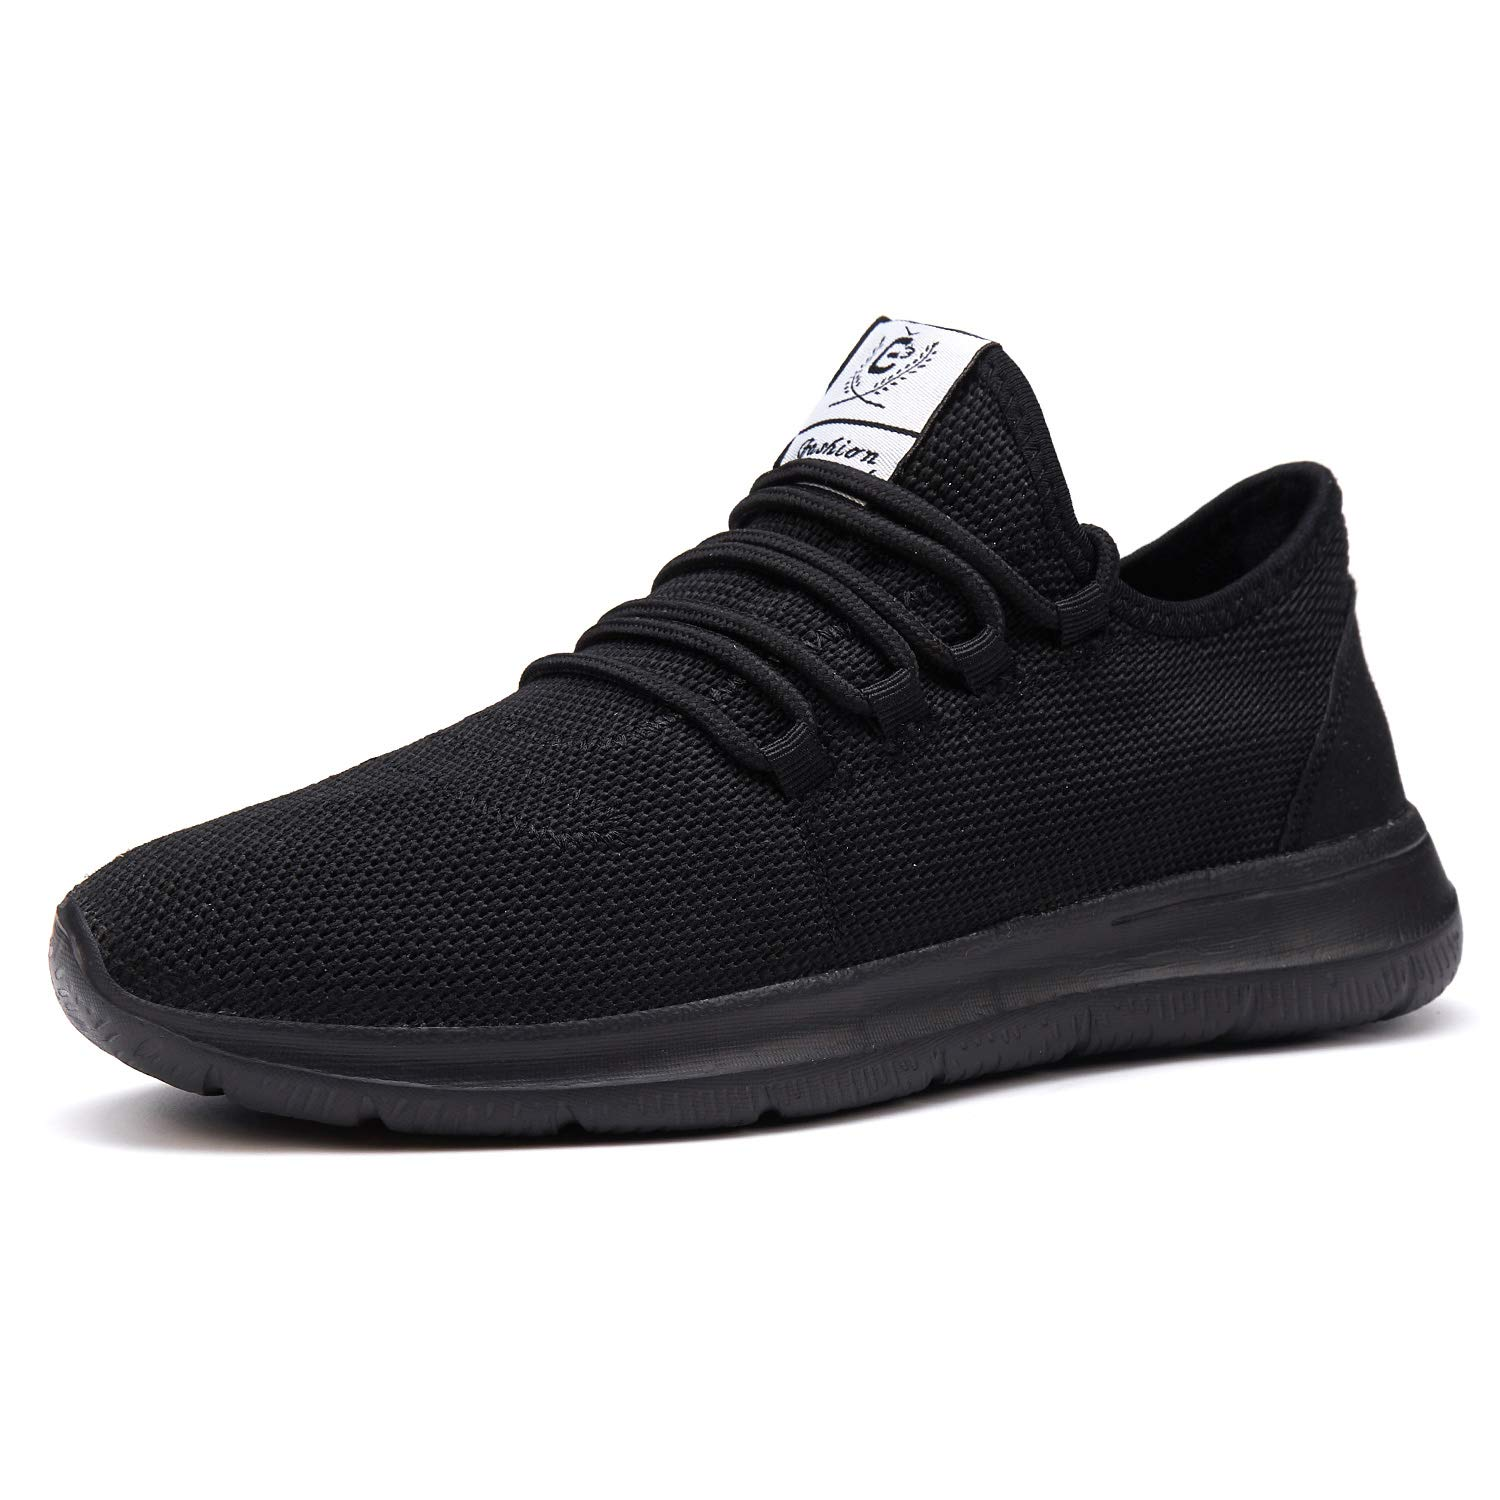 XUNMU Men's Walking Shoes Mesh Casual Athletic Shoes Running Shoes Lightweight Breathable Fashion Sneakers All Black 45 by XUNMU